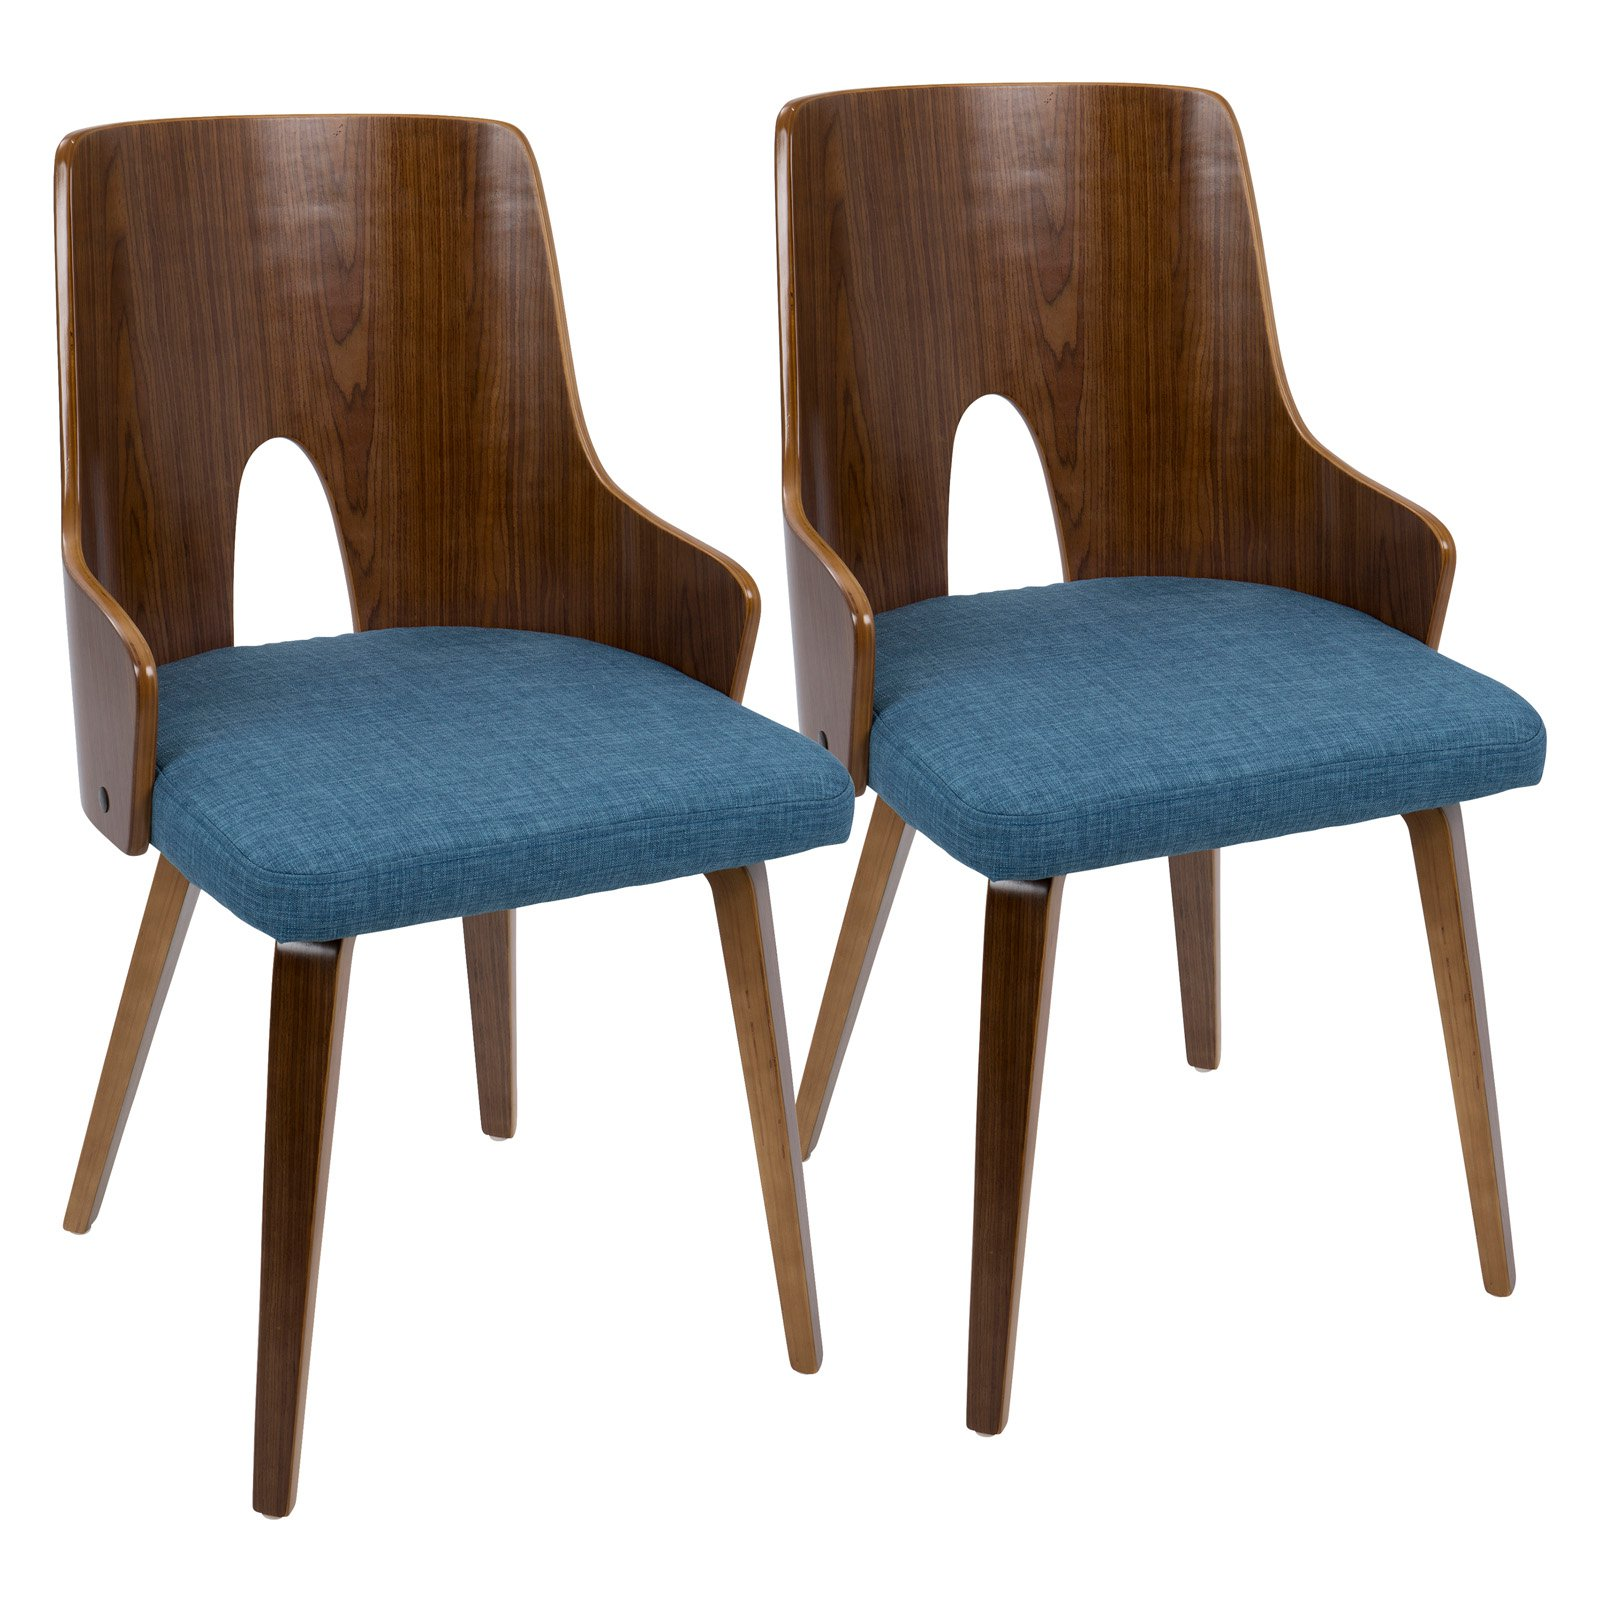 Ariana Mid-Century Modern Dining Accent Chair in Walnut and Beige Fabric by Lumisource Set of 2 by LumiSource